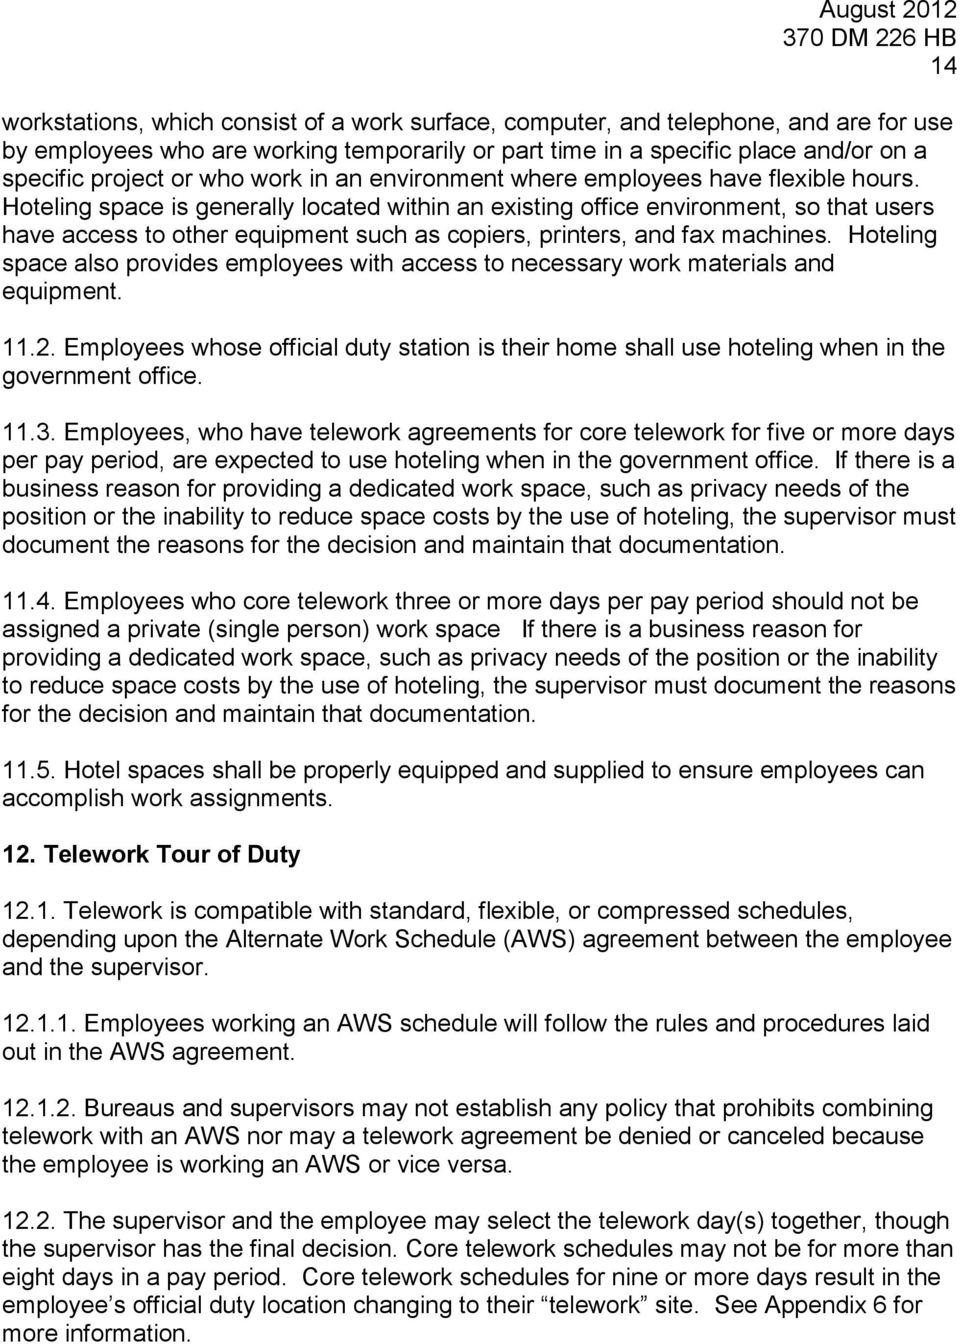 Telework handbook 370 dm 226 pdf hoteling space is generally located within an existing office environment so that users have access maxwellsz